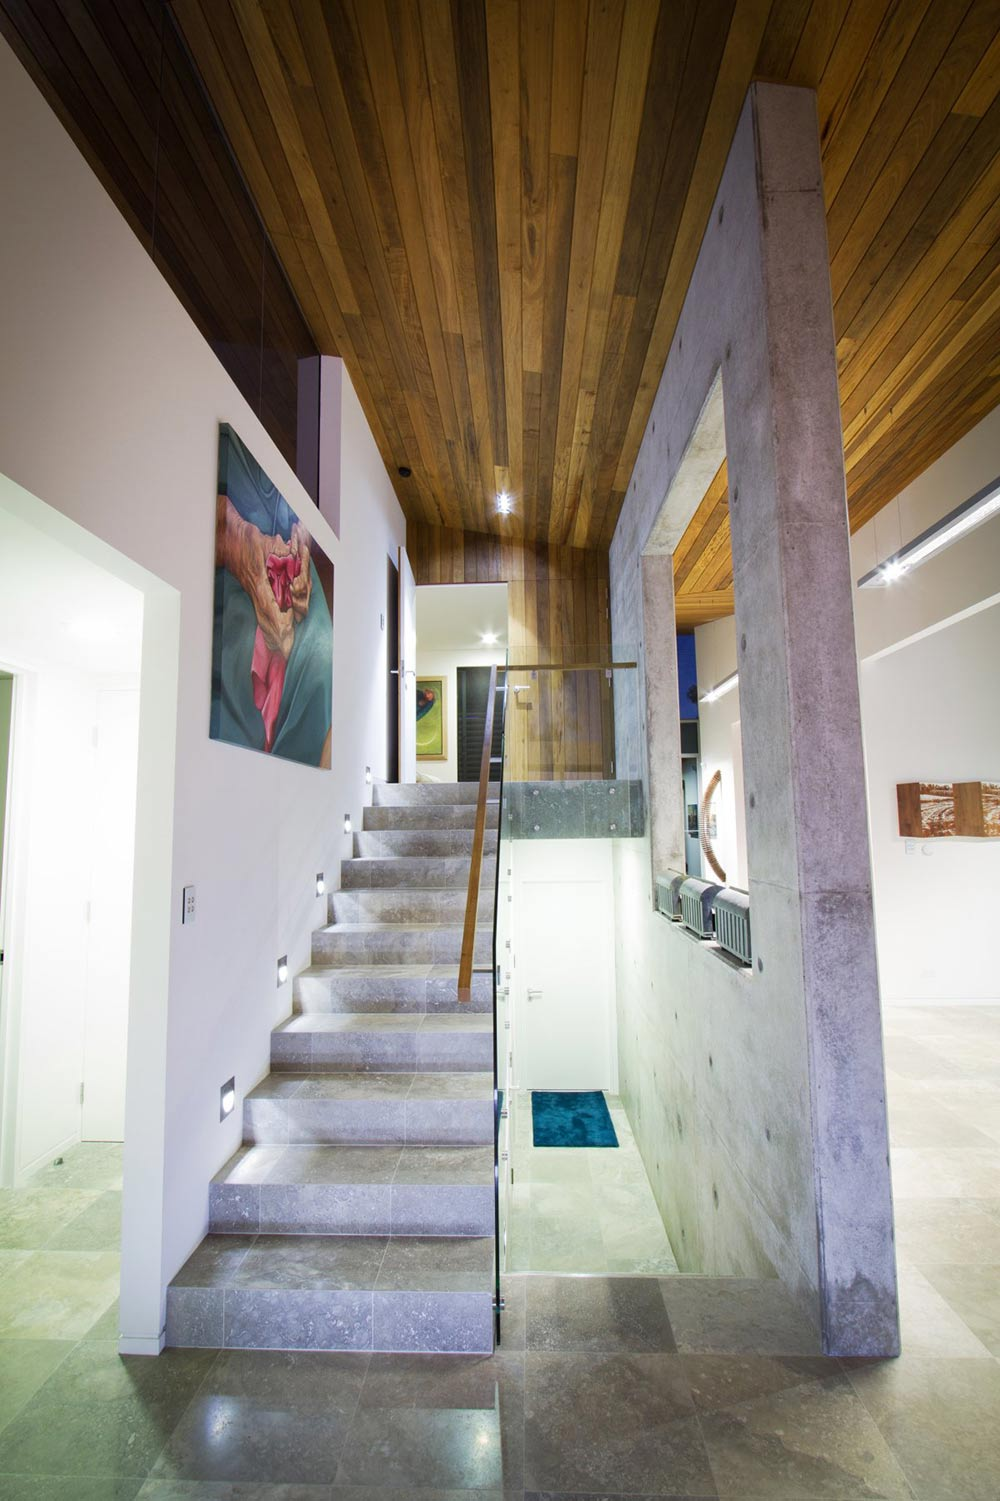 Tiled Stairs, Lighting, The 24 House in Dunsborough, Australia